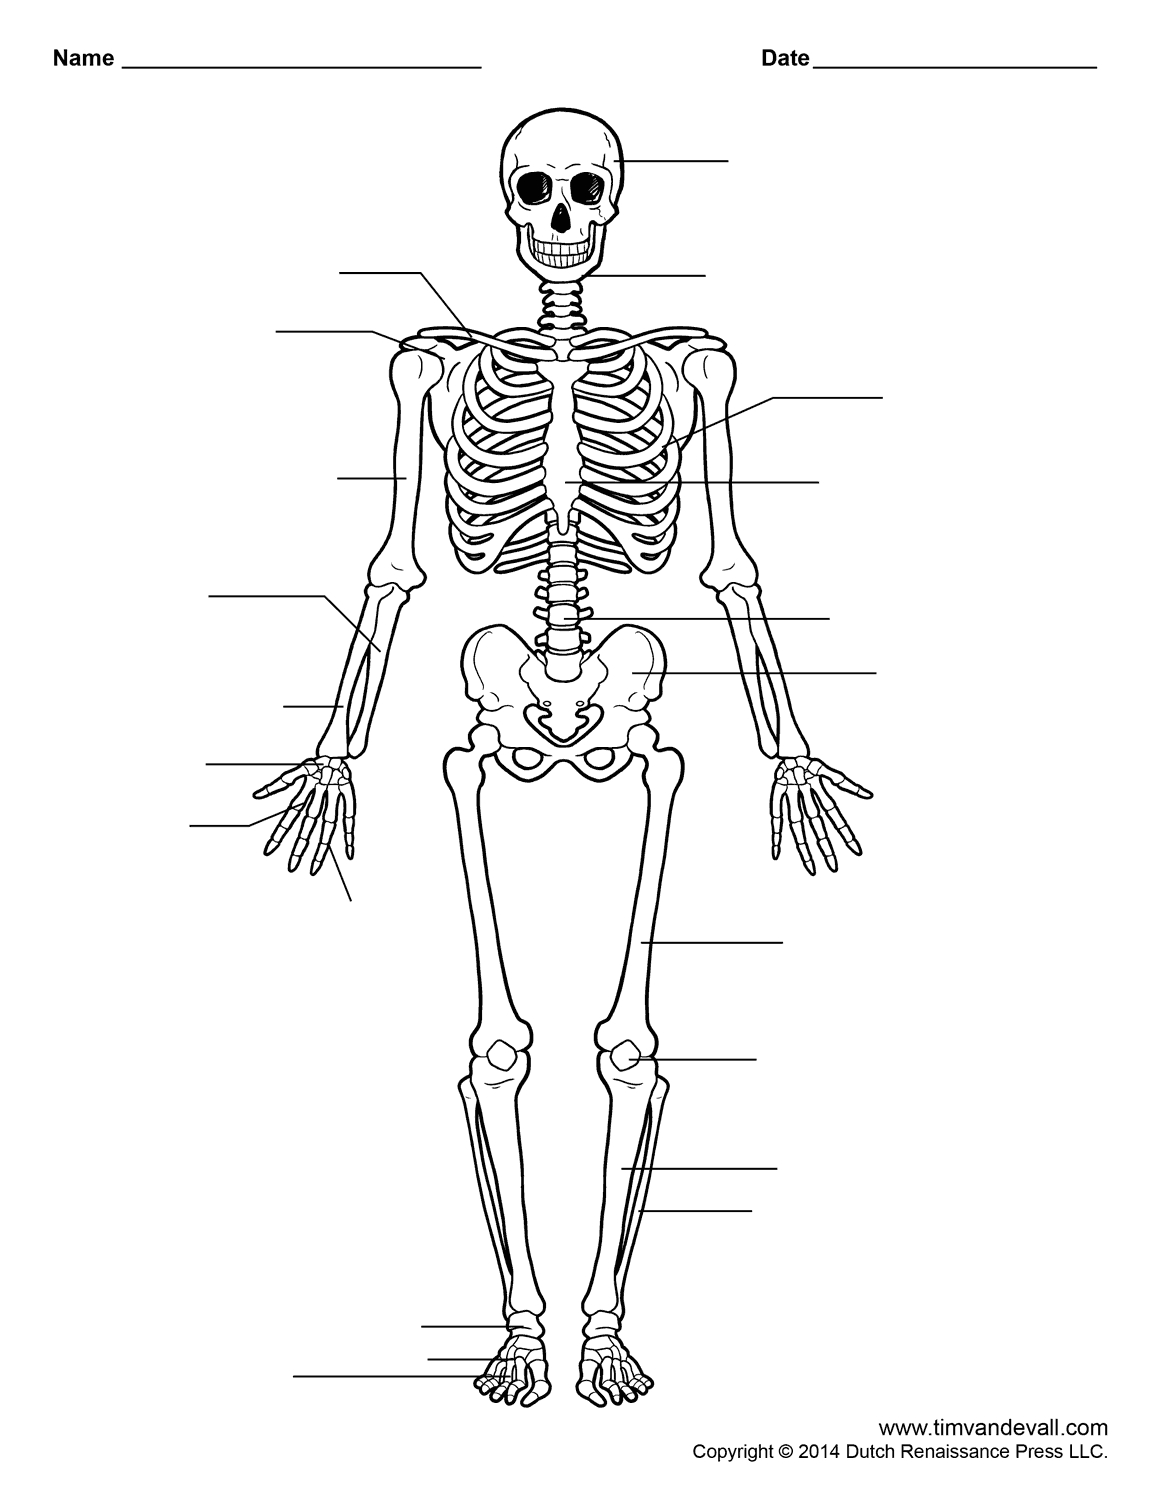 Human Skeleton Worksheet | Homeschool-Science | Human Skeleton | Human Skeleton Printable Worksheet